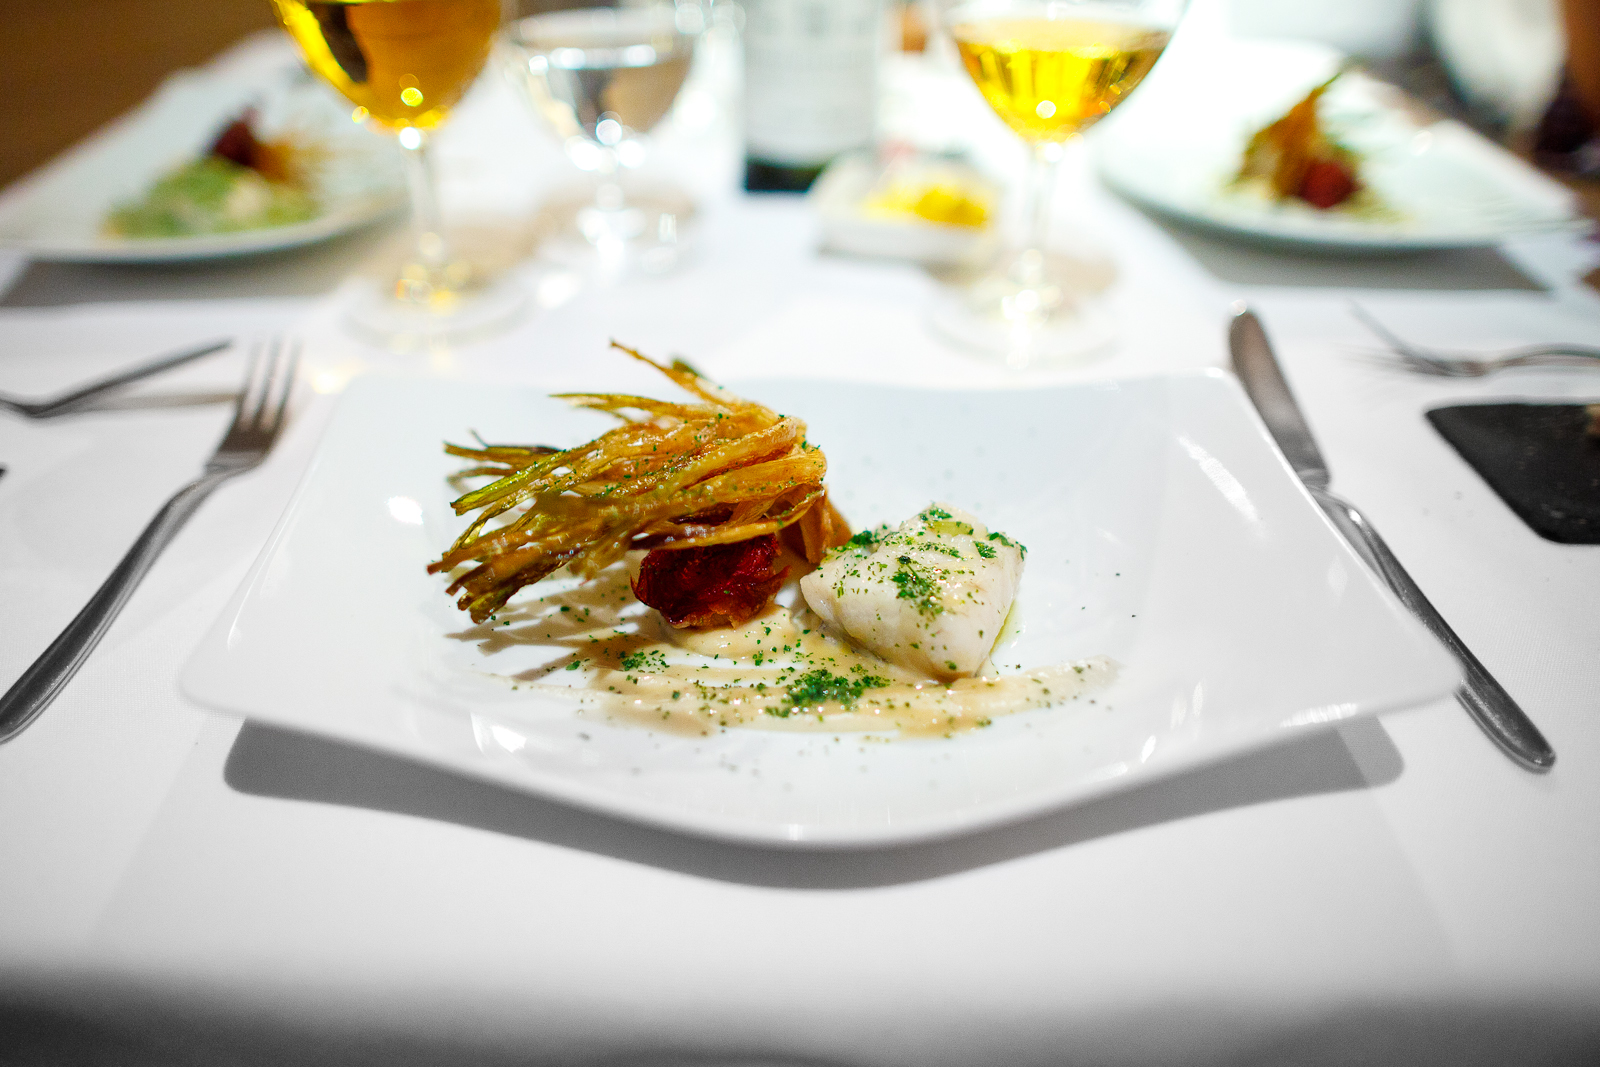 6th Course: Pescado del día con flor de alcachofa (fish of the day with artichoke blossom), unsauced